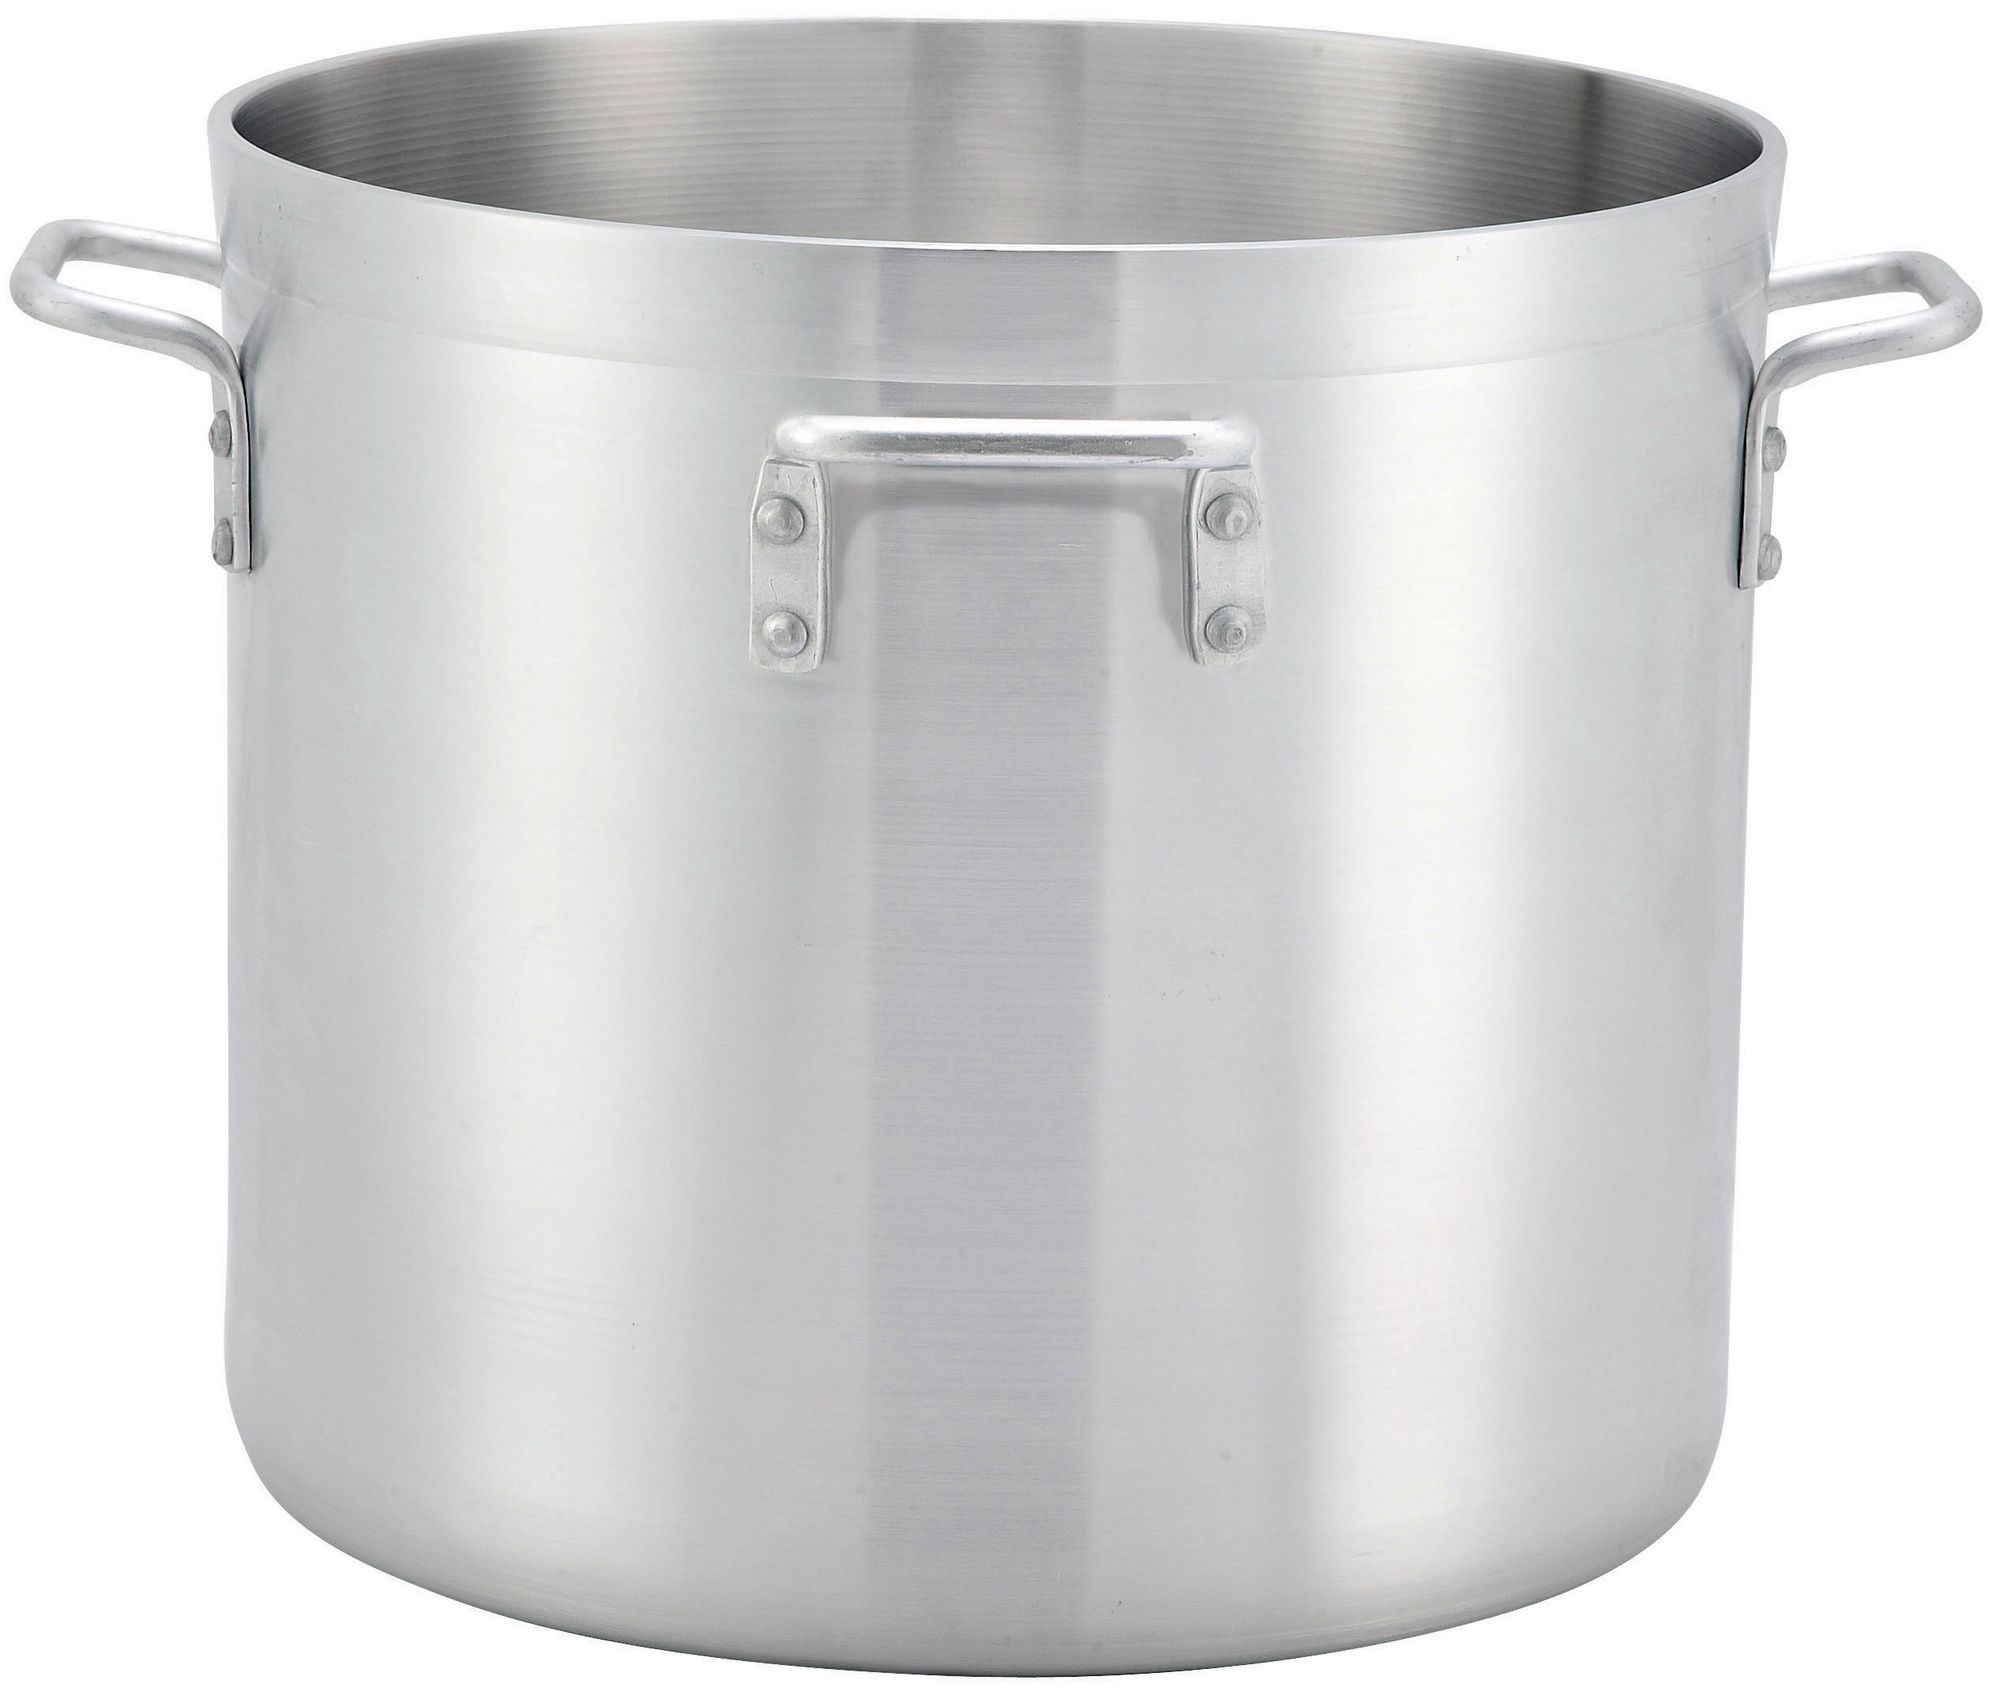 Winco ALHP-140H Precision Aluminum 140 Qt. Stock Pot with 4 Handles